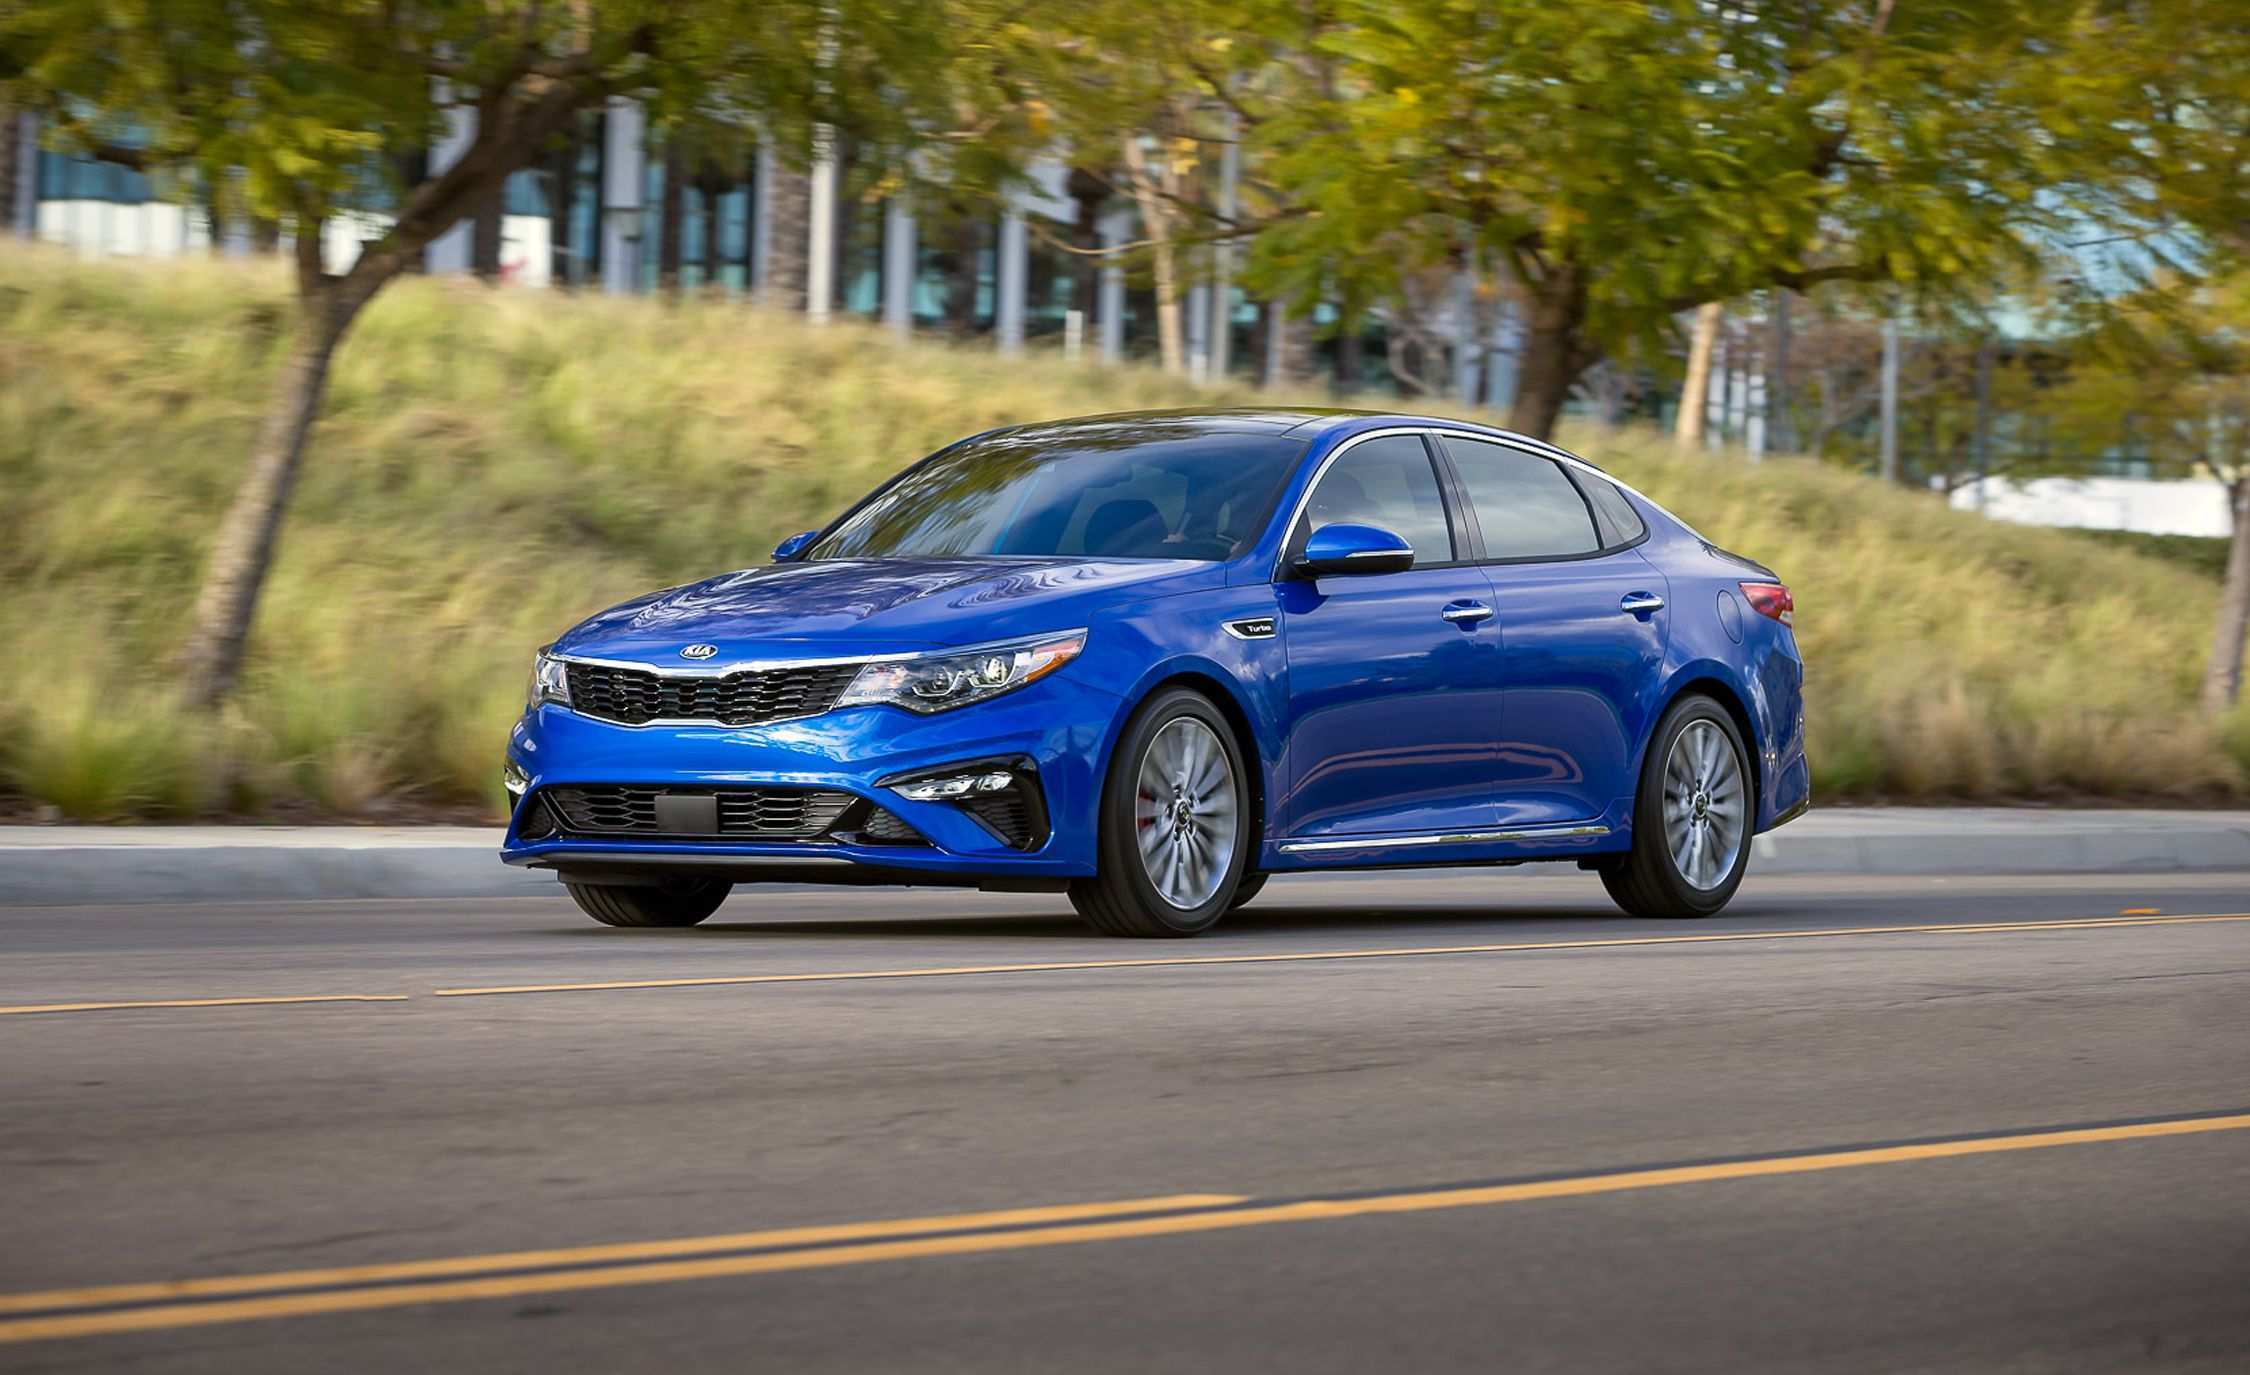 38 All New 2019 Kia Optima Specs Prices